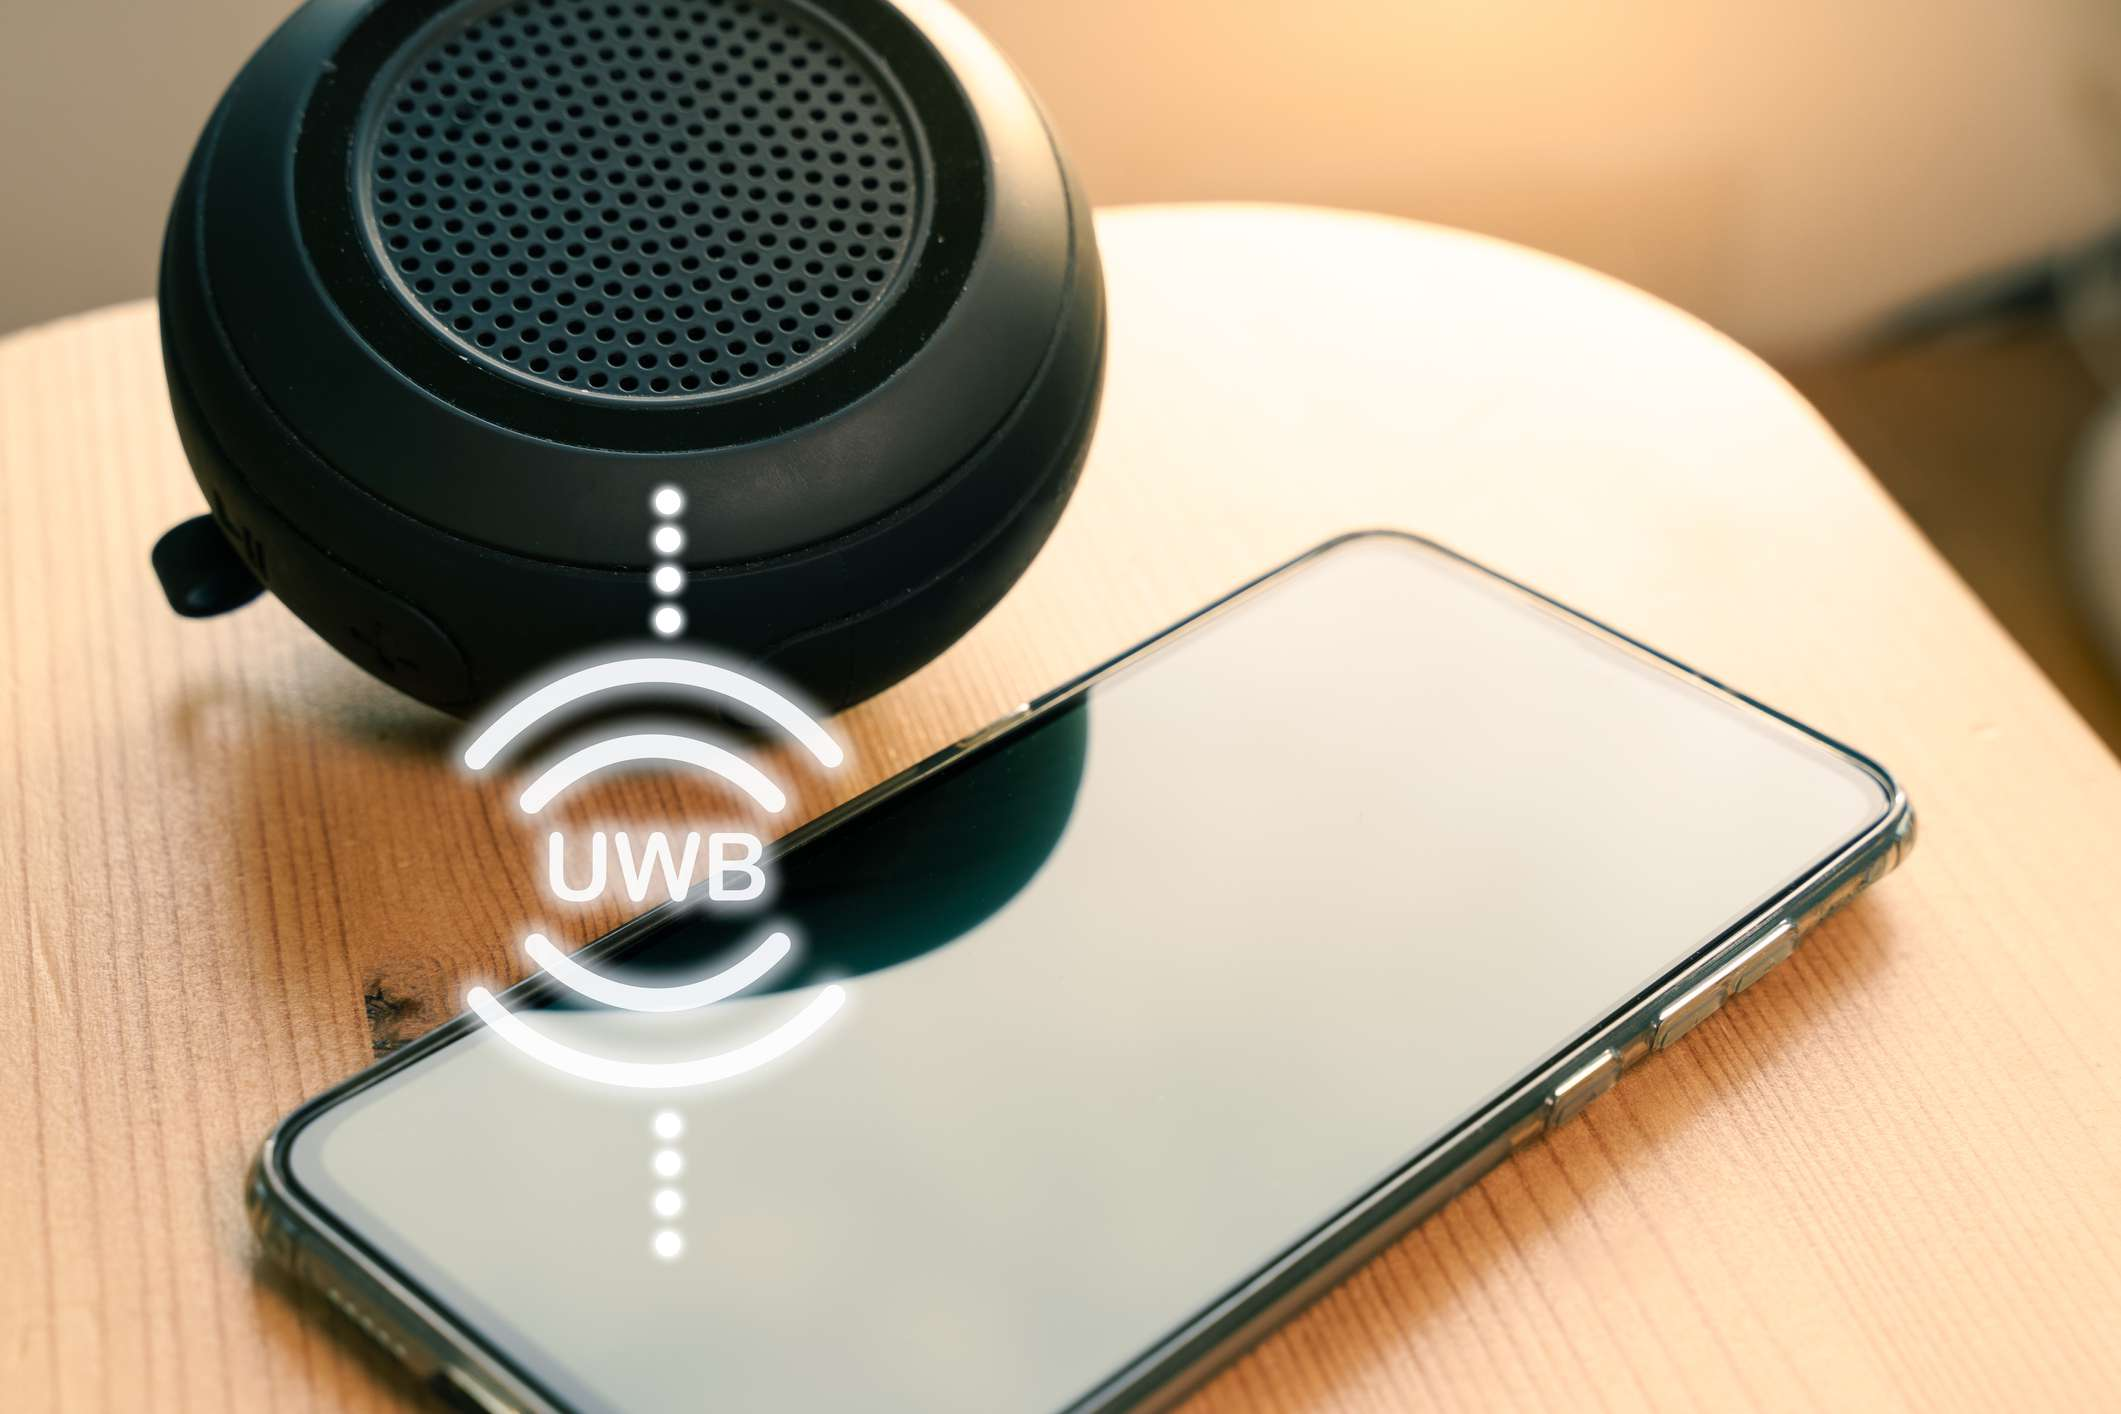 UWB or ultra wideband radio technology speaker connecting to a smartphone